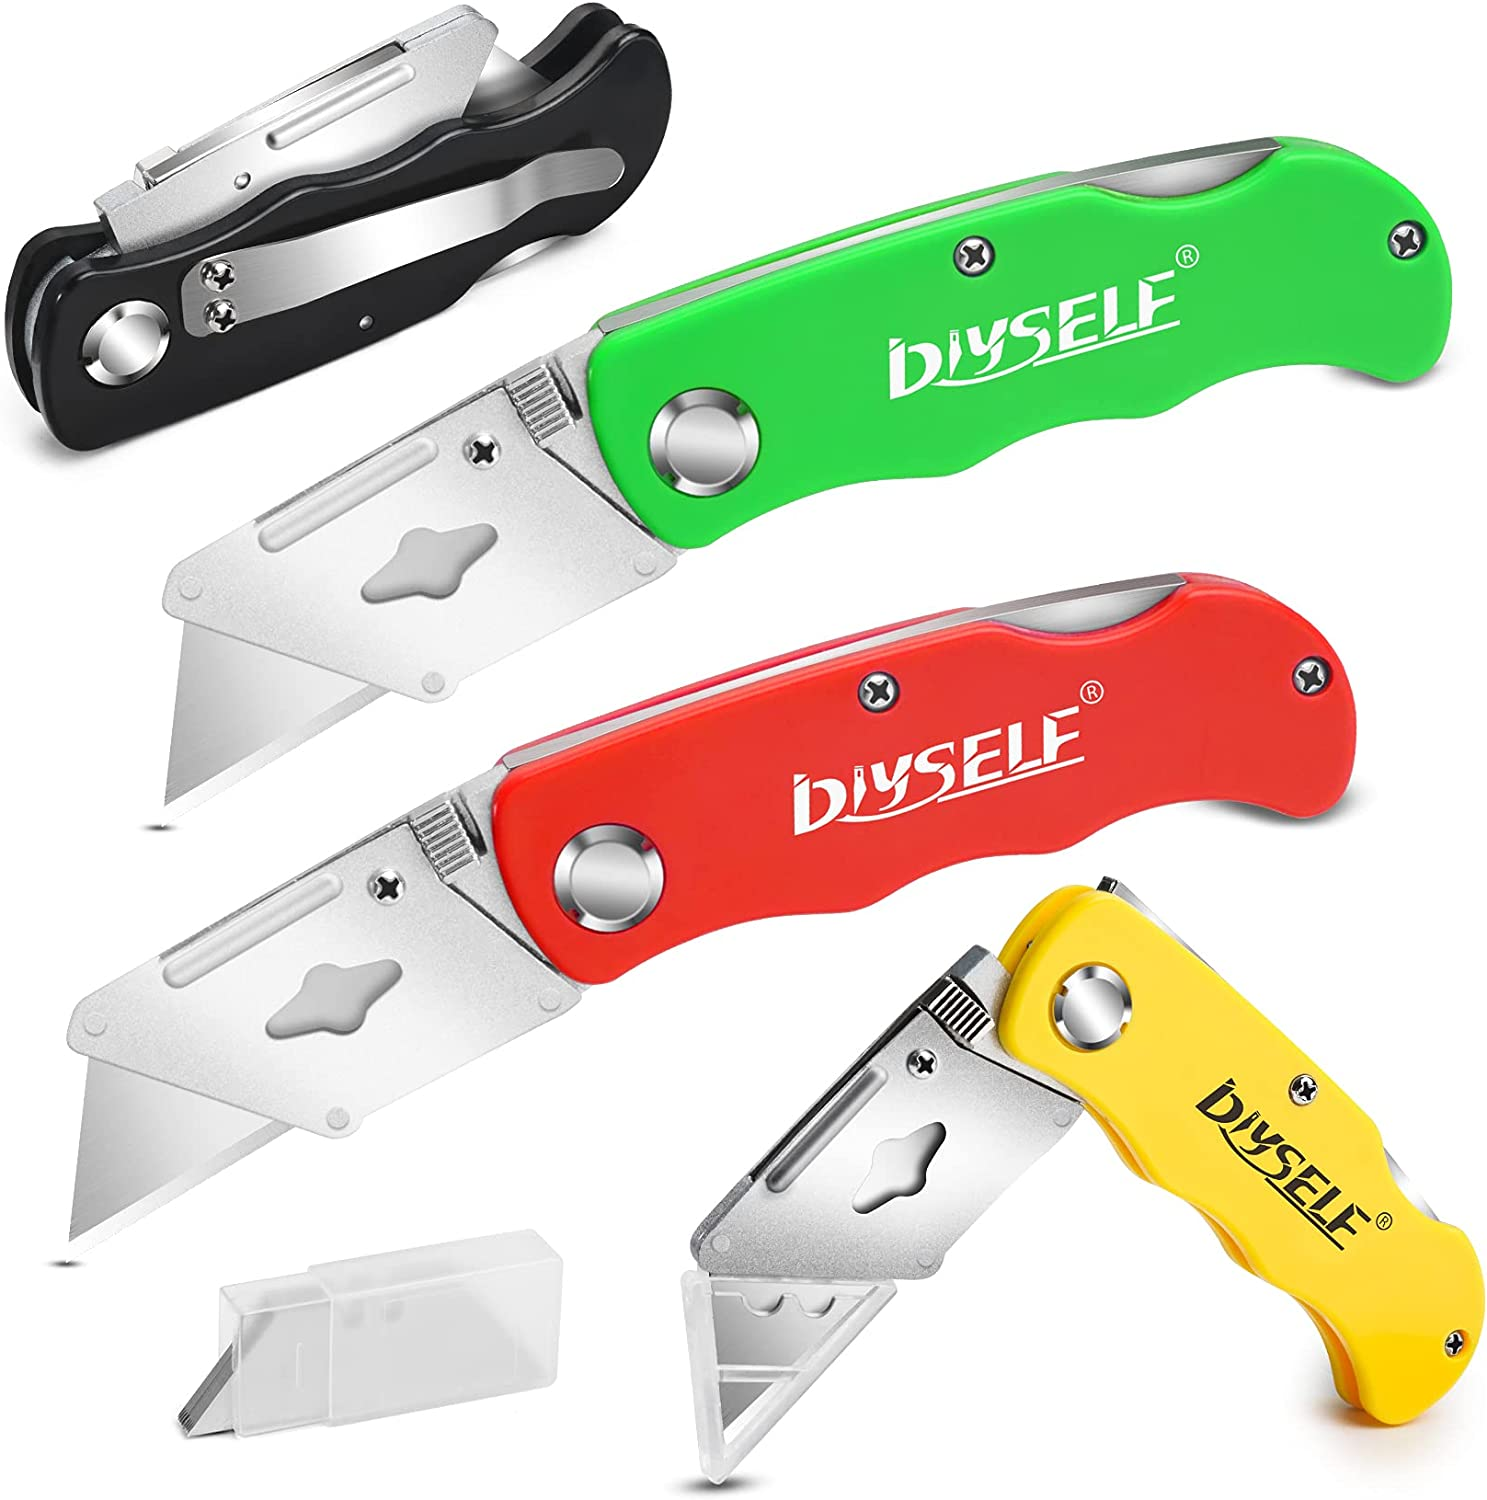 DIYSELF Knife 4 Pack Box Cutters Now on sale Very popular Raz 10 Blades With Cutter